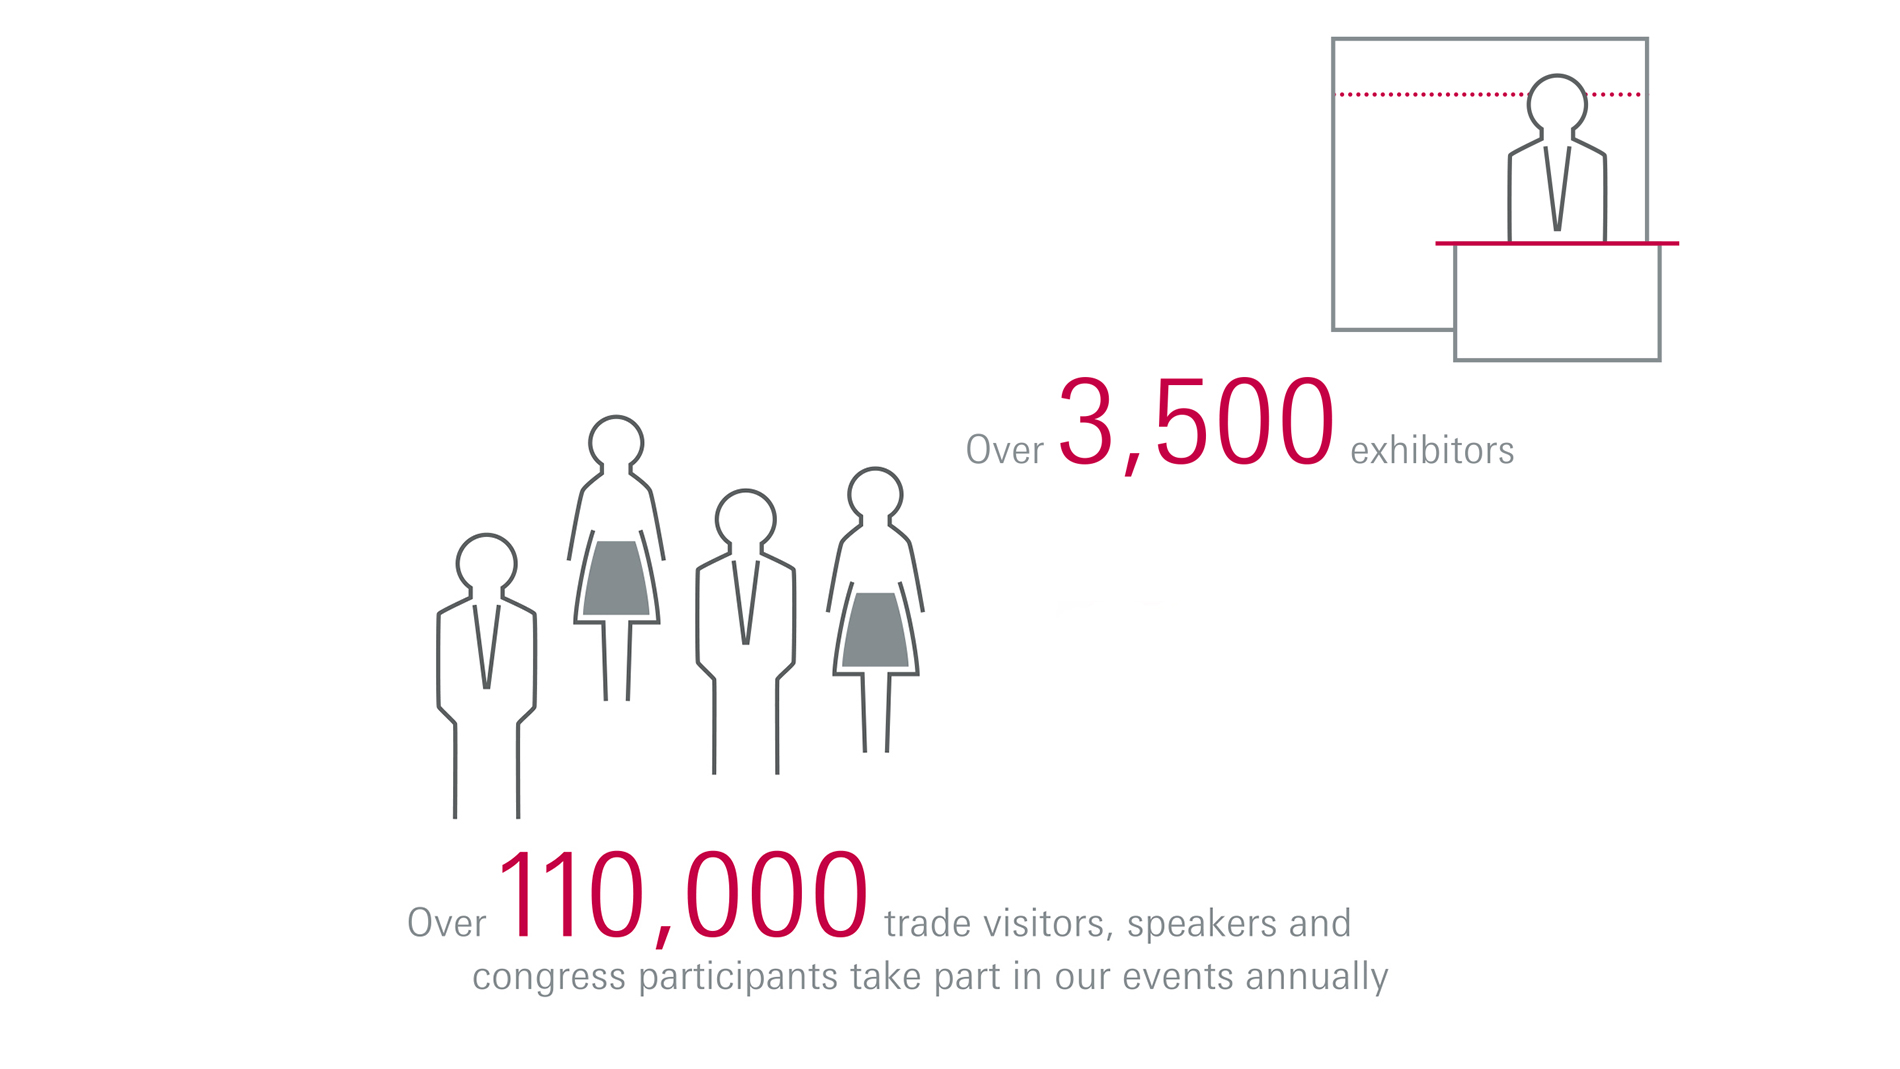 Over 3500 exhibitors. Over 110000 trade visitors, speakers and congress participants take part in our events annually